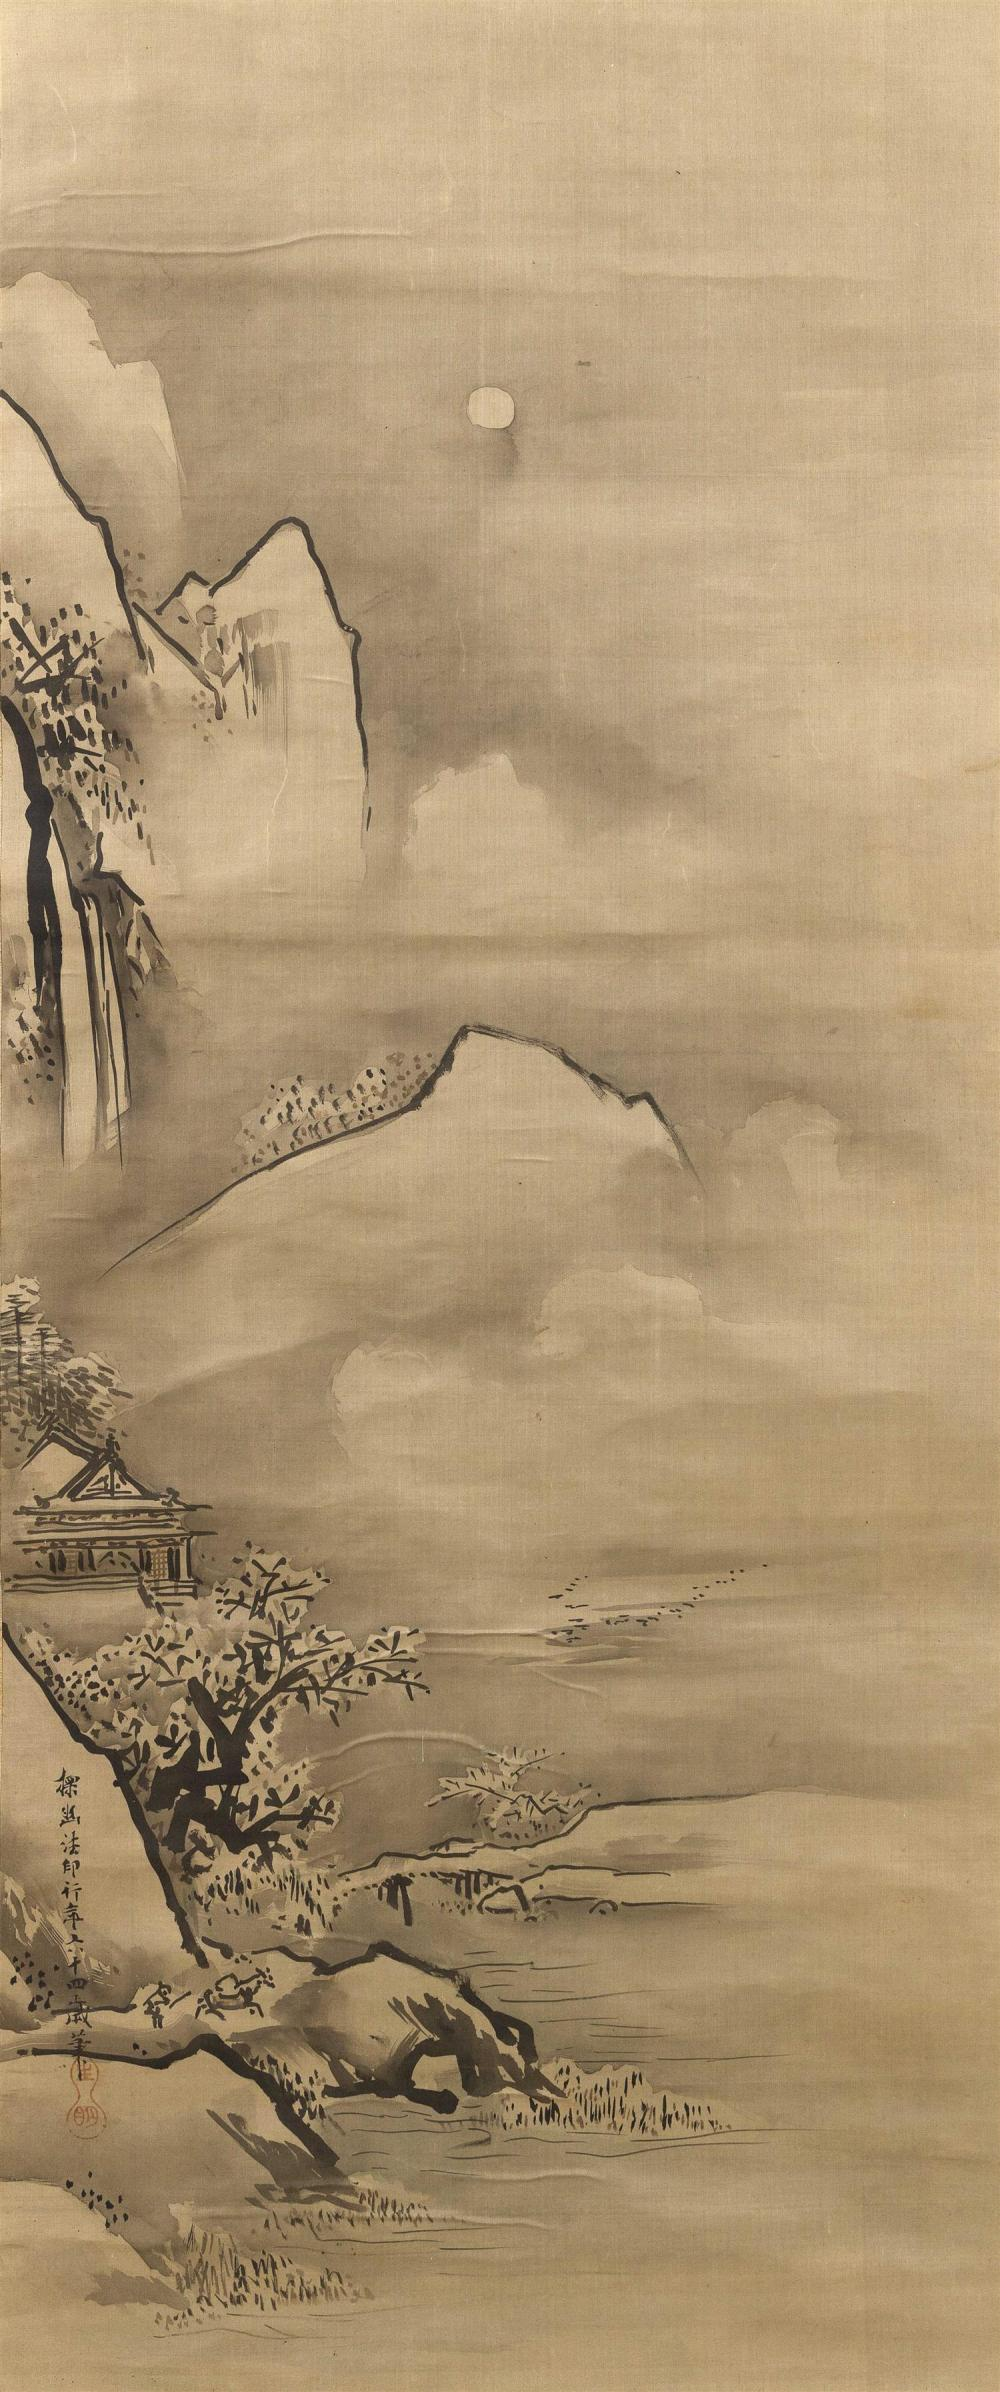 SET OF THREE JAPANESE SCROLL PAINTINGS ON SILK BY KANO TANYU (1602-1674) Painted in his 64th year. Central scroll depicts poet Li Po...